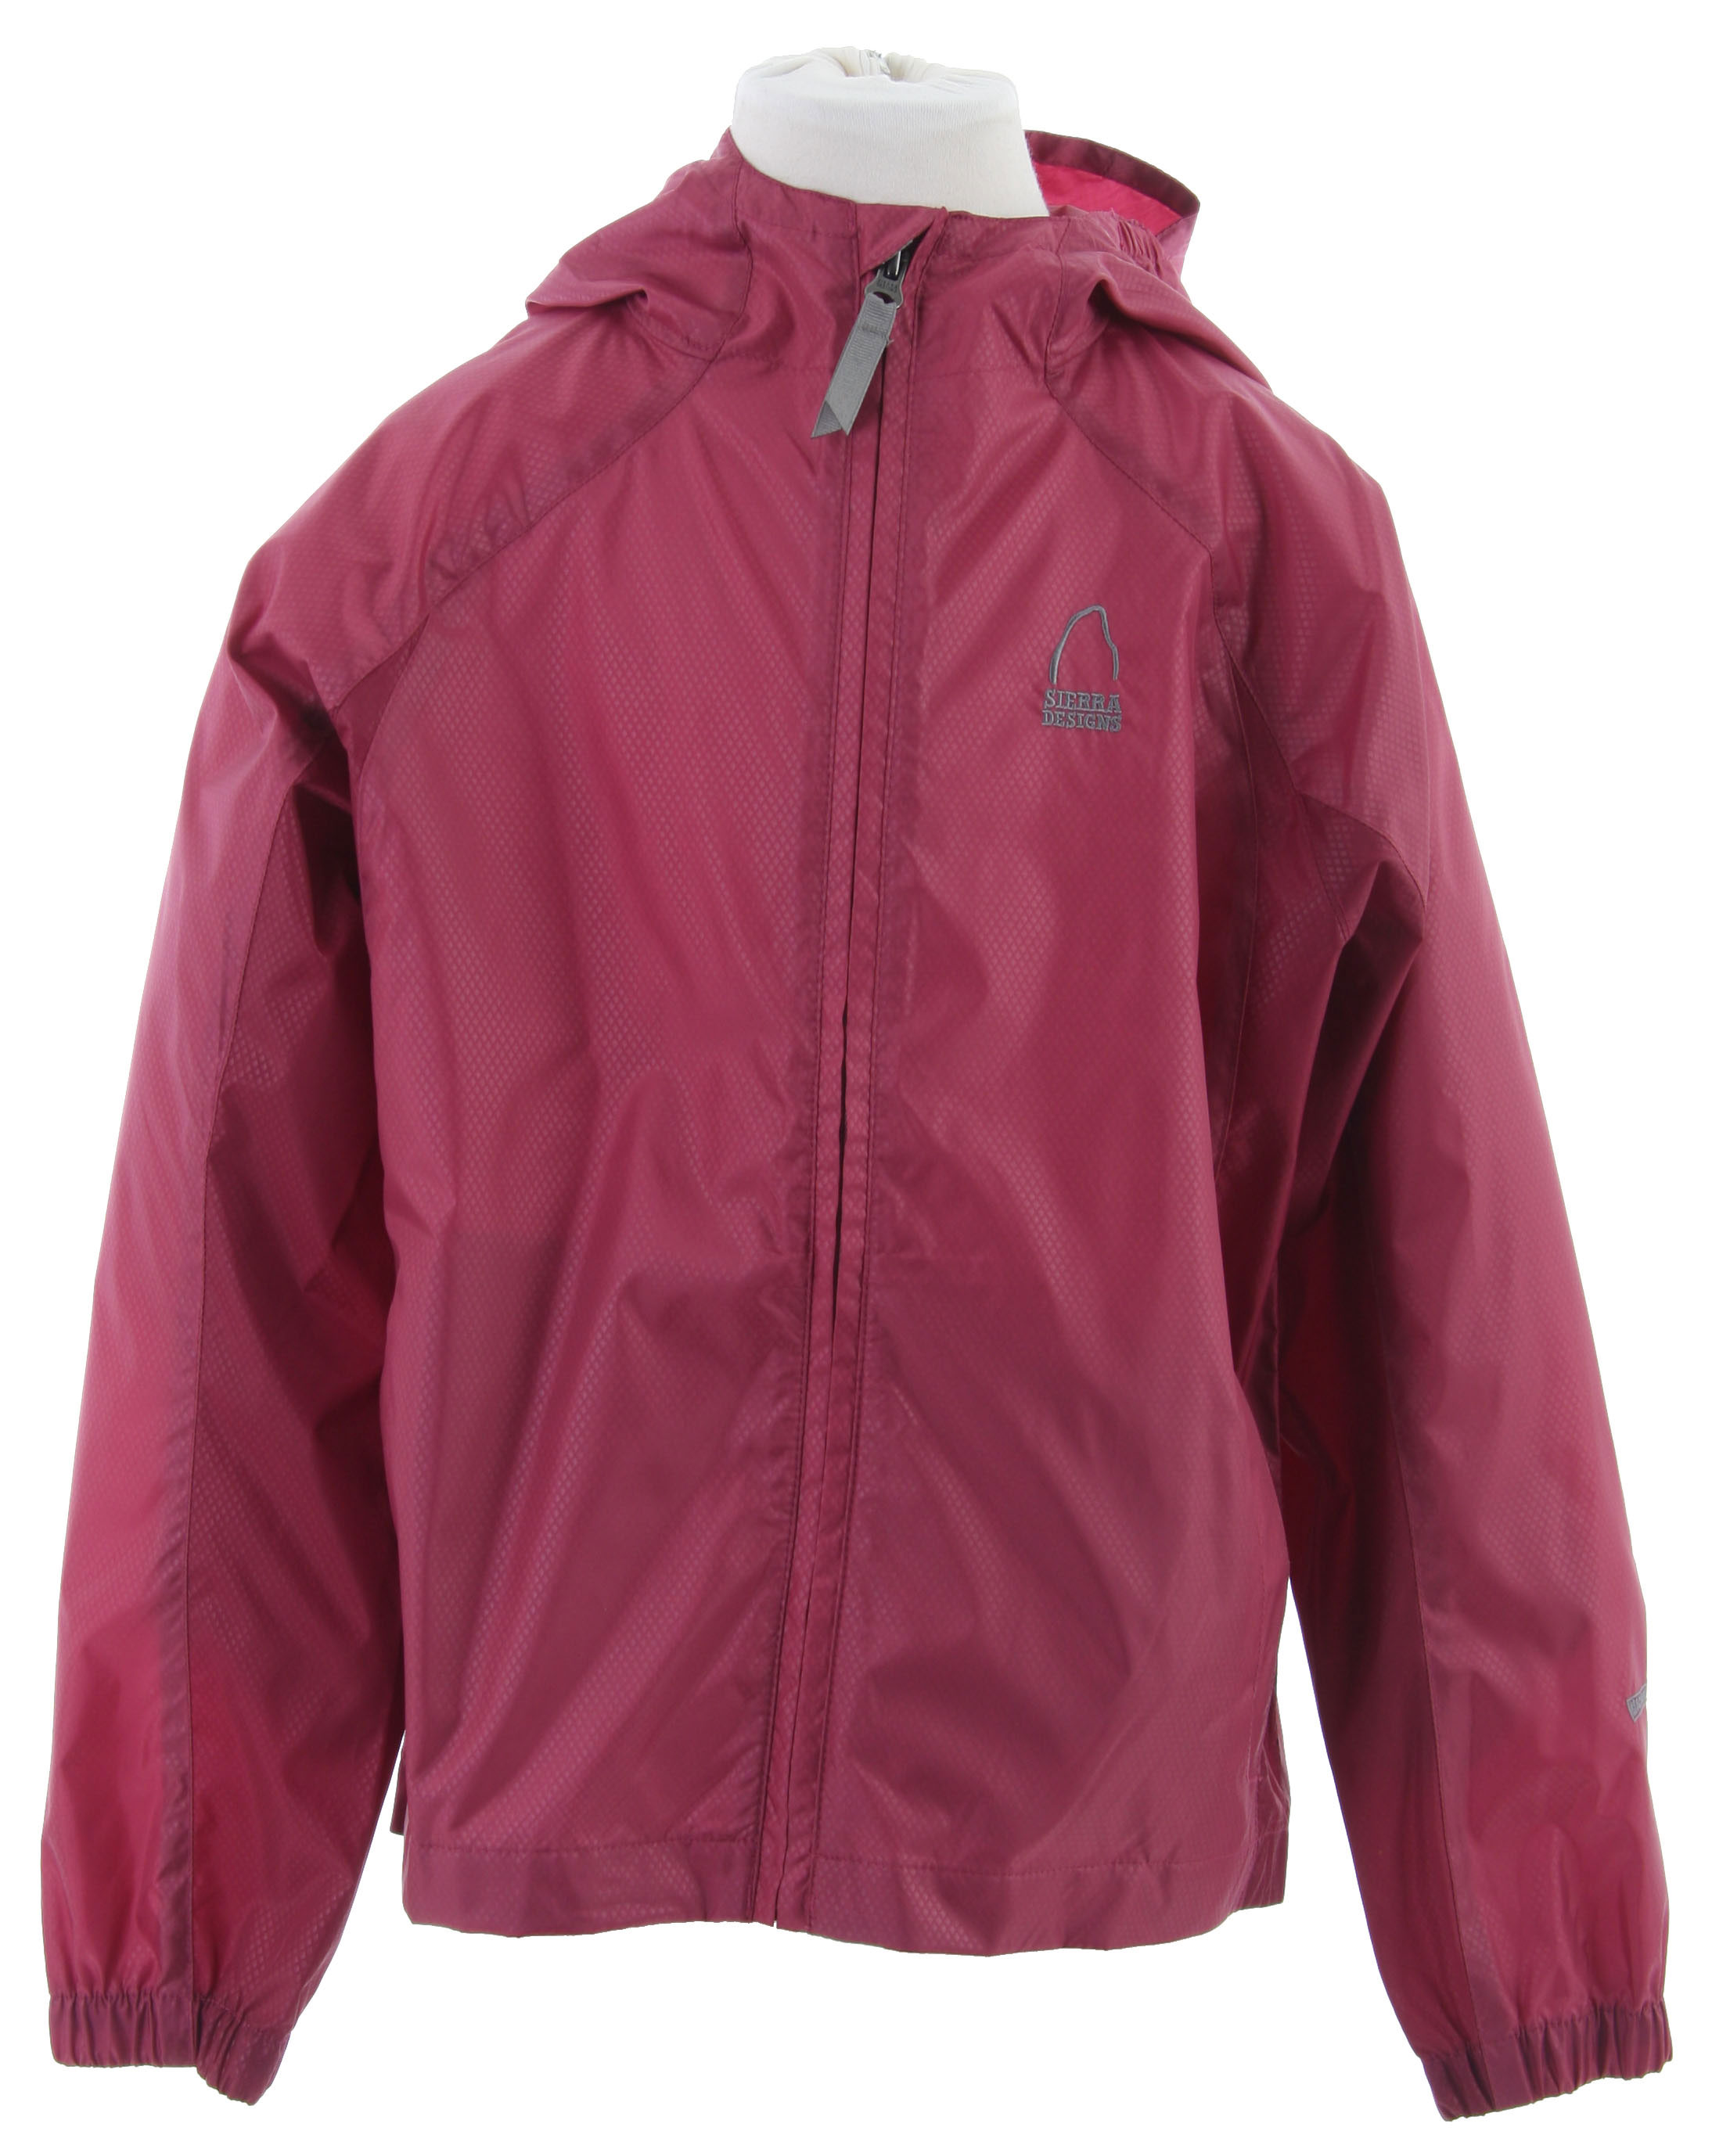 "An unbeatable value, Sierra Designs Microlight Girl's Shell Jacket is a versatile jacket insulates with a fast wicking, polyester lining. Perfect for a family trip, layering, on the trail, or on the playground.Key Features of the Sierra Designs Microlight Girl's Shell Jacket: Reverse Coil Center Front Zipper 2 Hand Pockets 1 Zippered Interior Chest Pocket with Earbud Portal Elastic Cuffs Includes Stuff Sack 100% polyester brushed tricot lining Center Back Length 23"" (M) Weight 13 oz Microlight Accelerator (800 WP) 100% Polyester, Water-Resistant Finish, Shell: 3.04 oz/yd; (103 g/sqm), Lining: 2.54 oz/yd; (86 g/sqm) - $20.95"